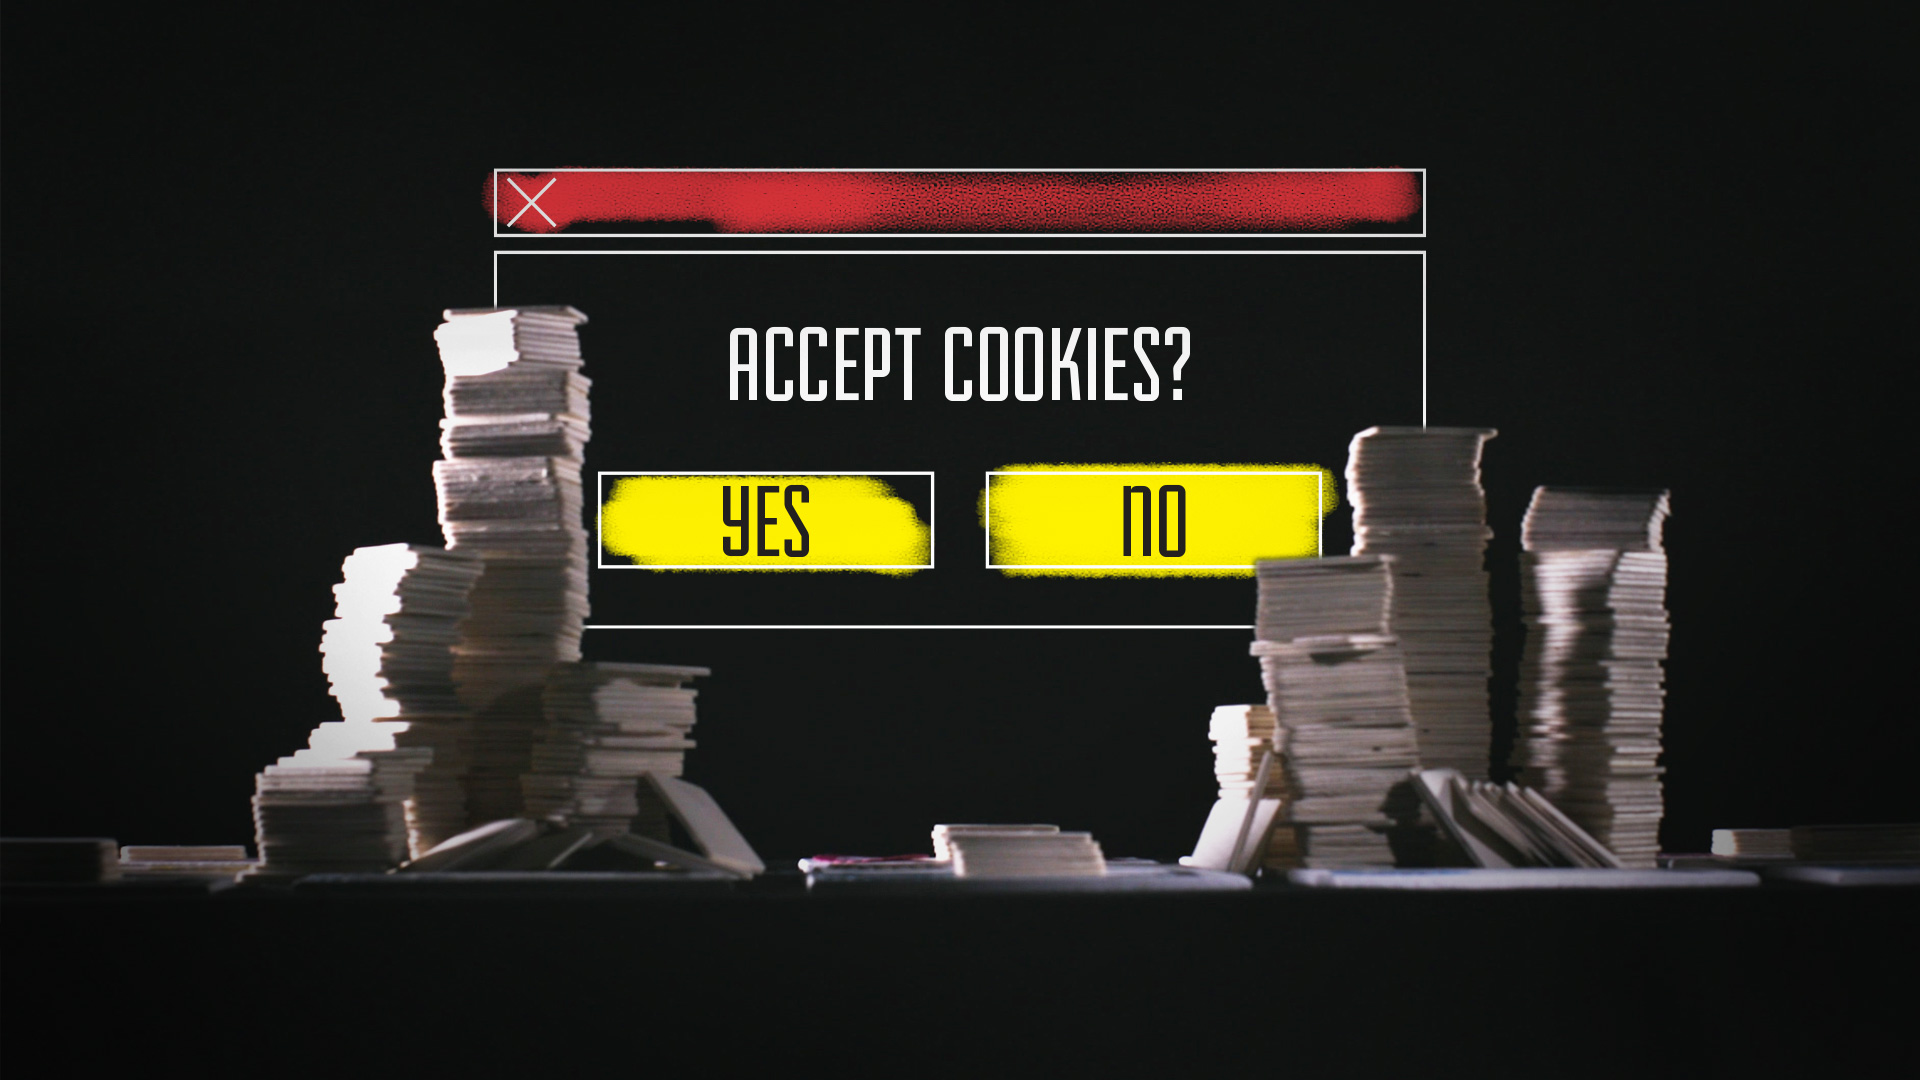 Accept cookies? Yes/no.